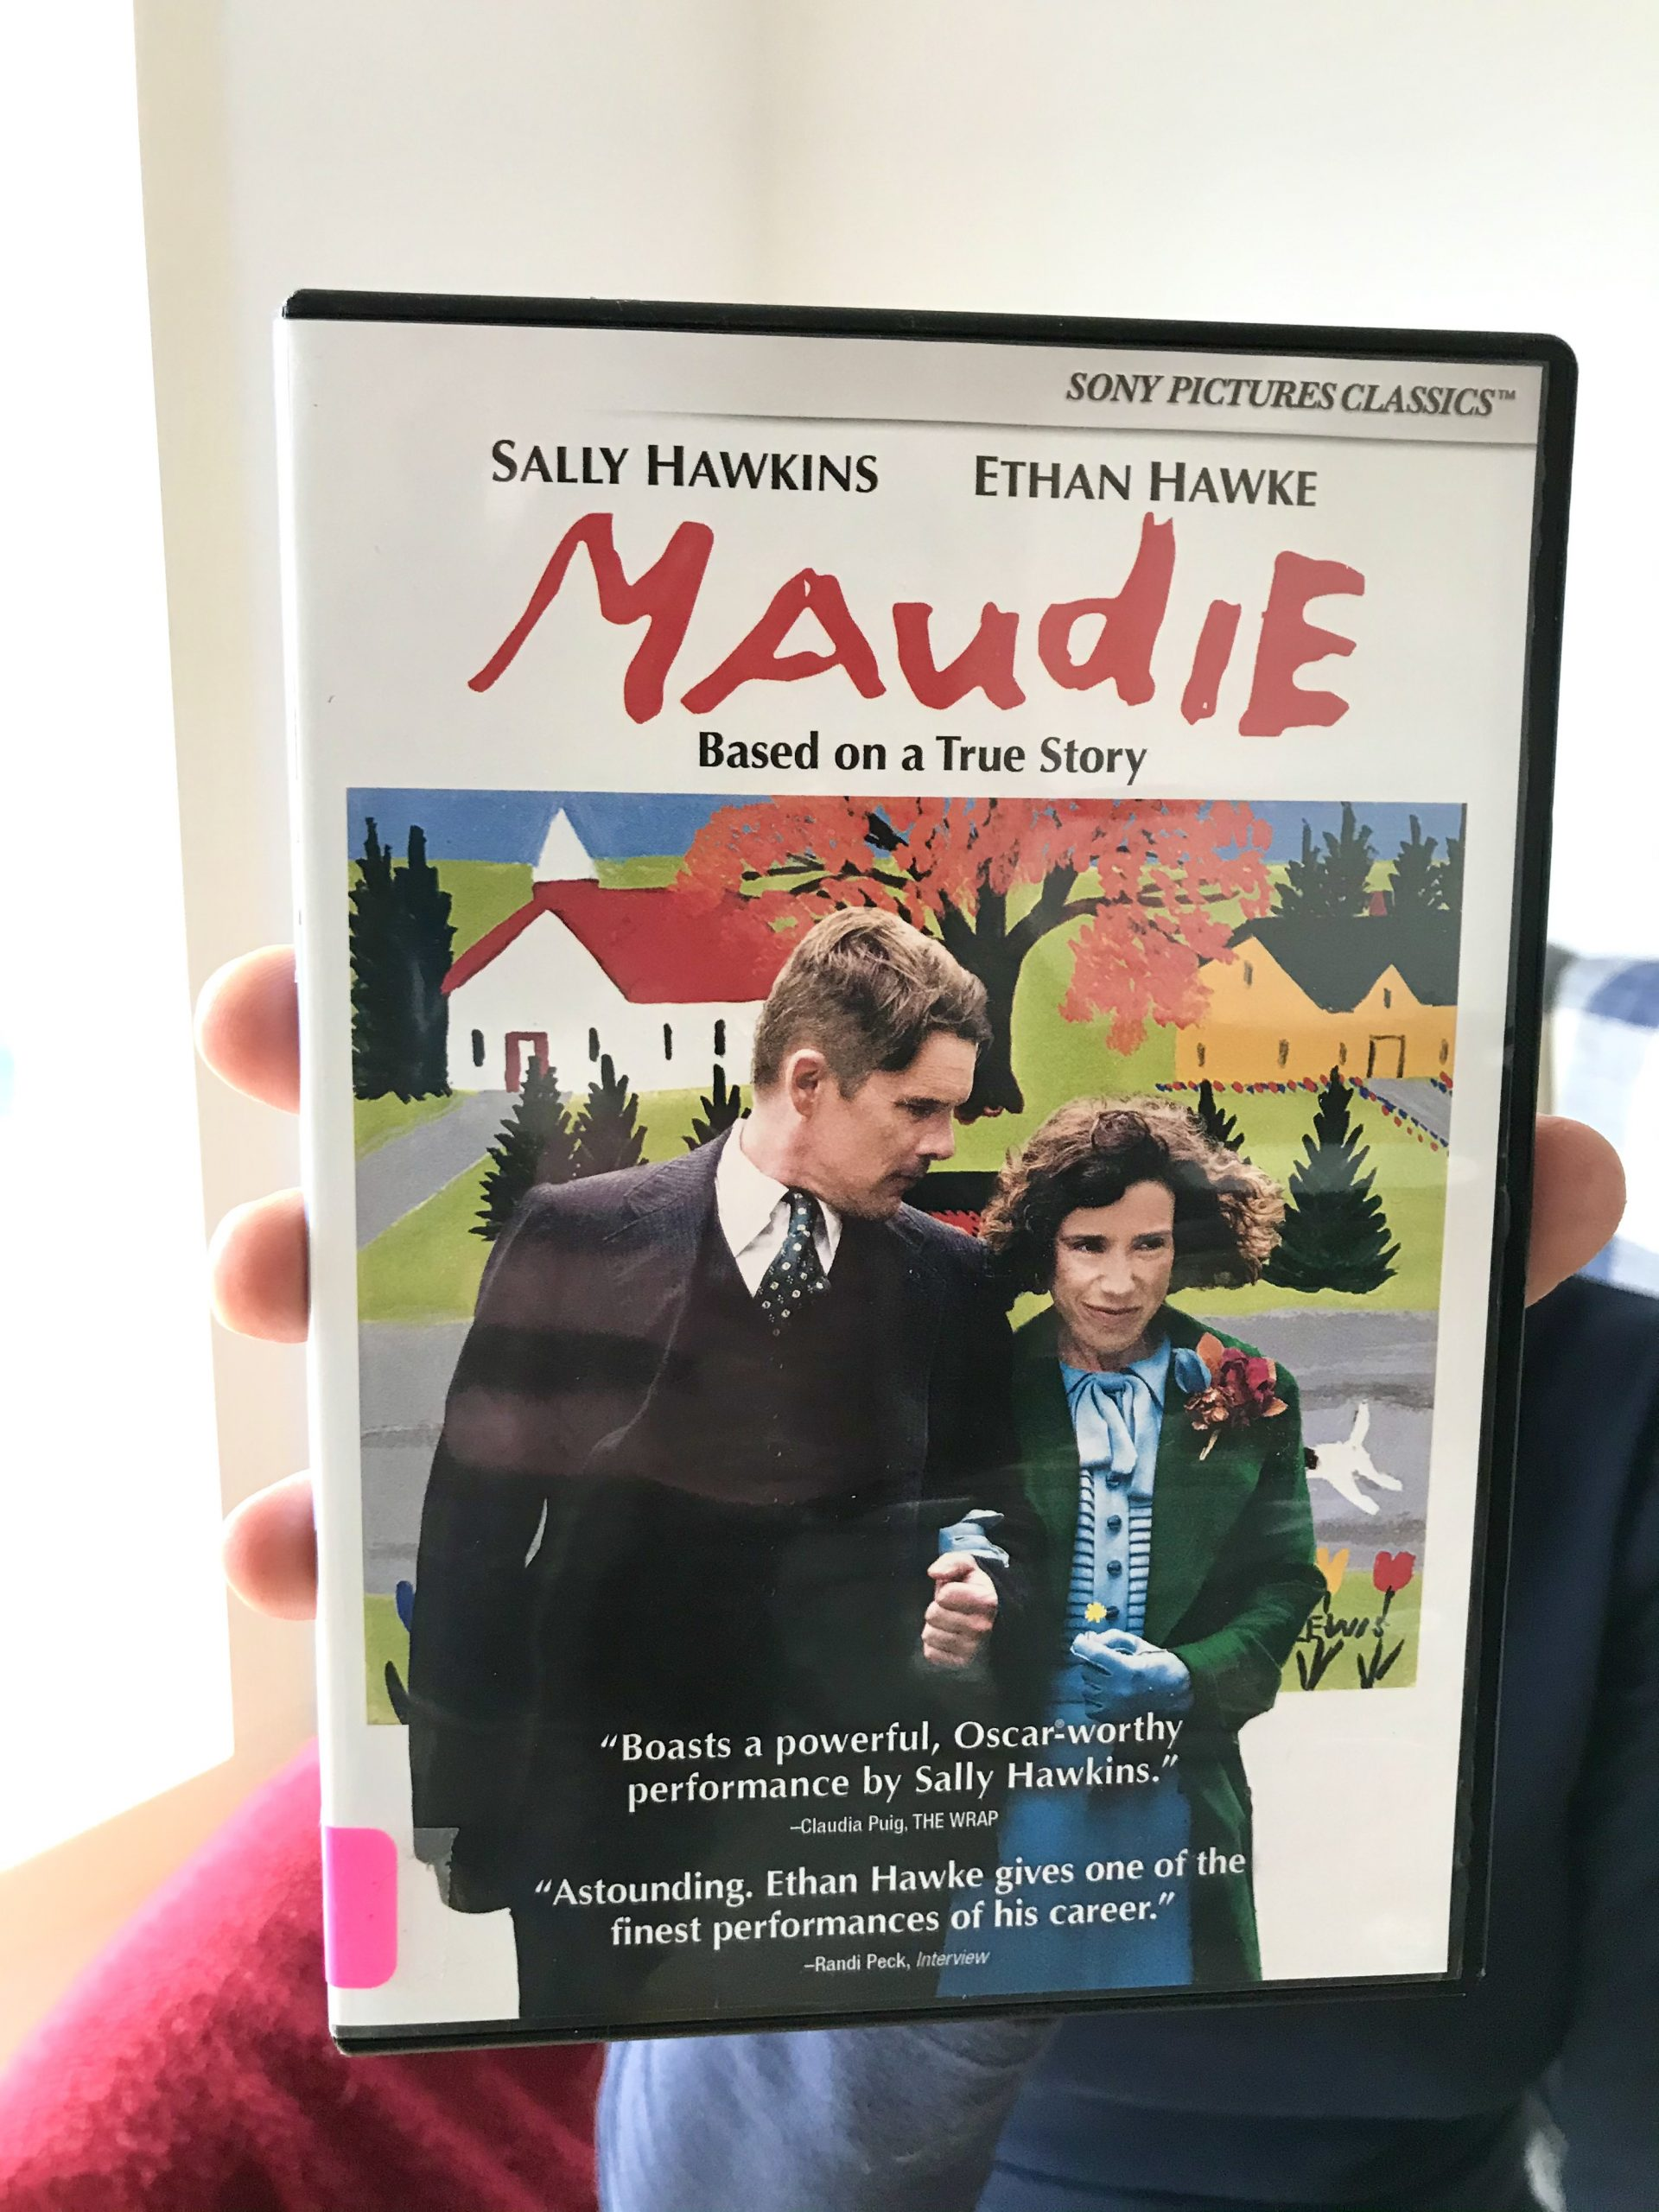 Friday Night at the Movies – Maudie